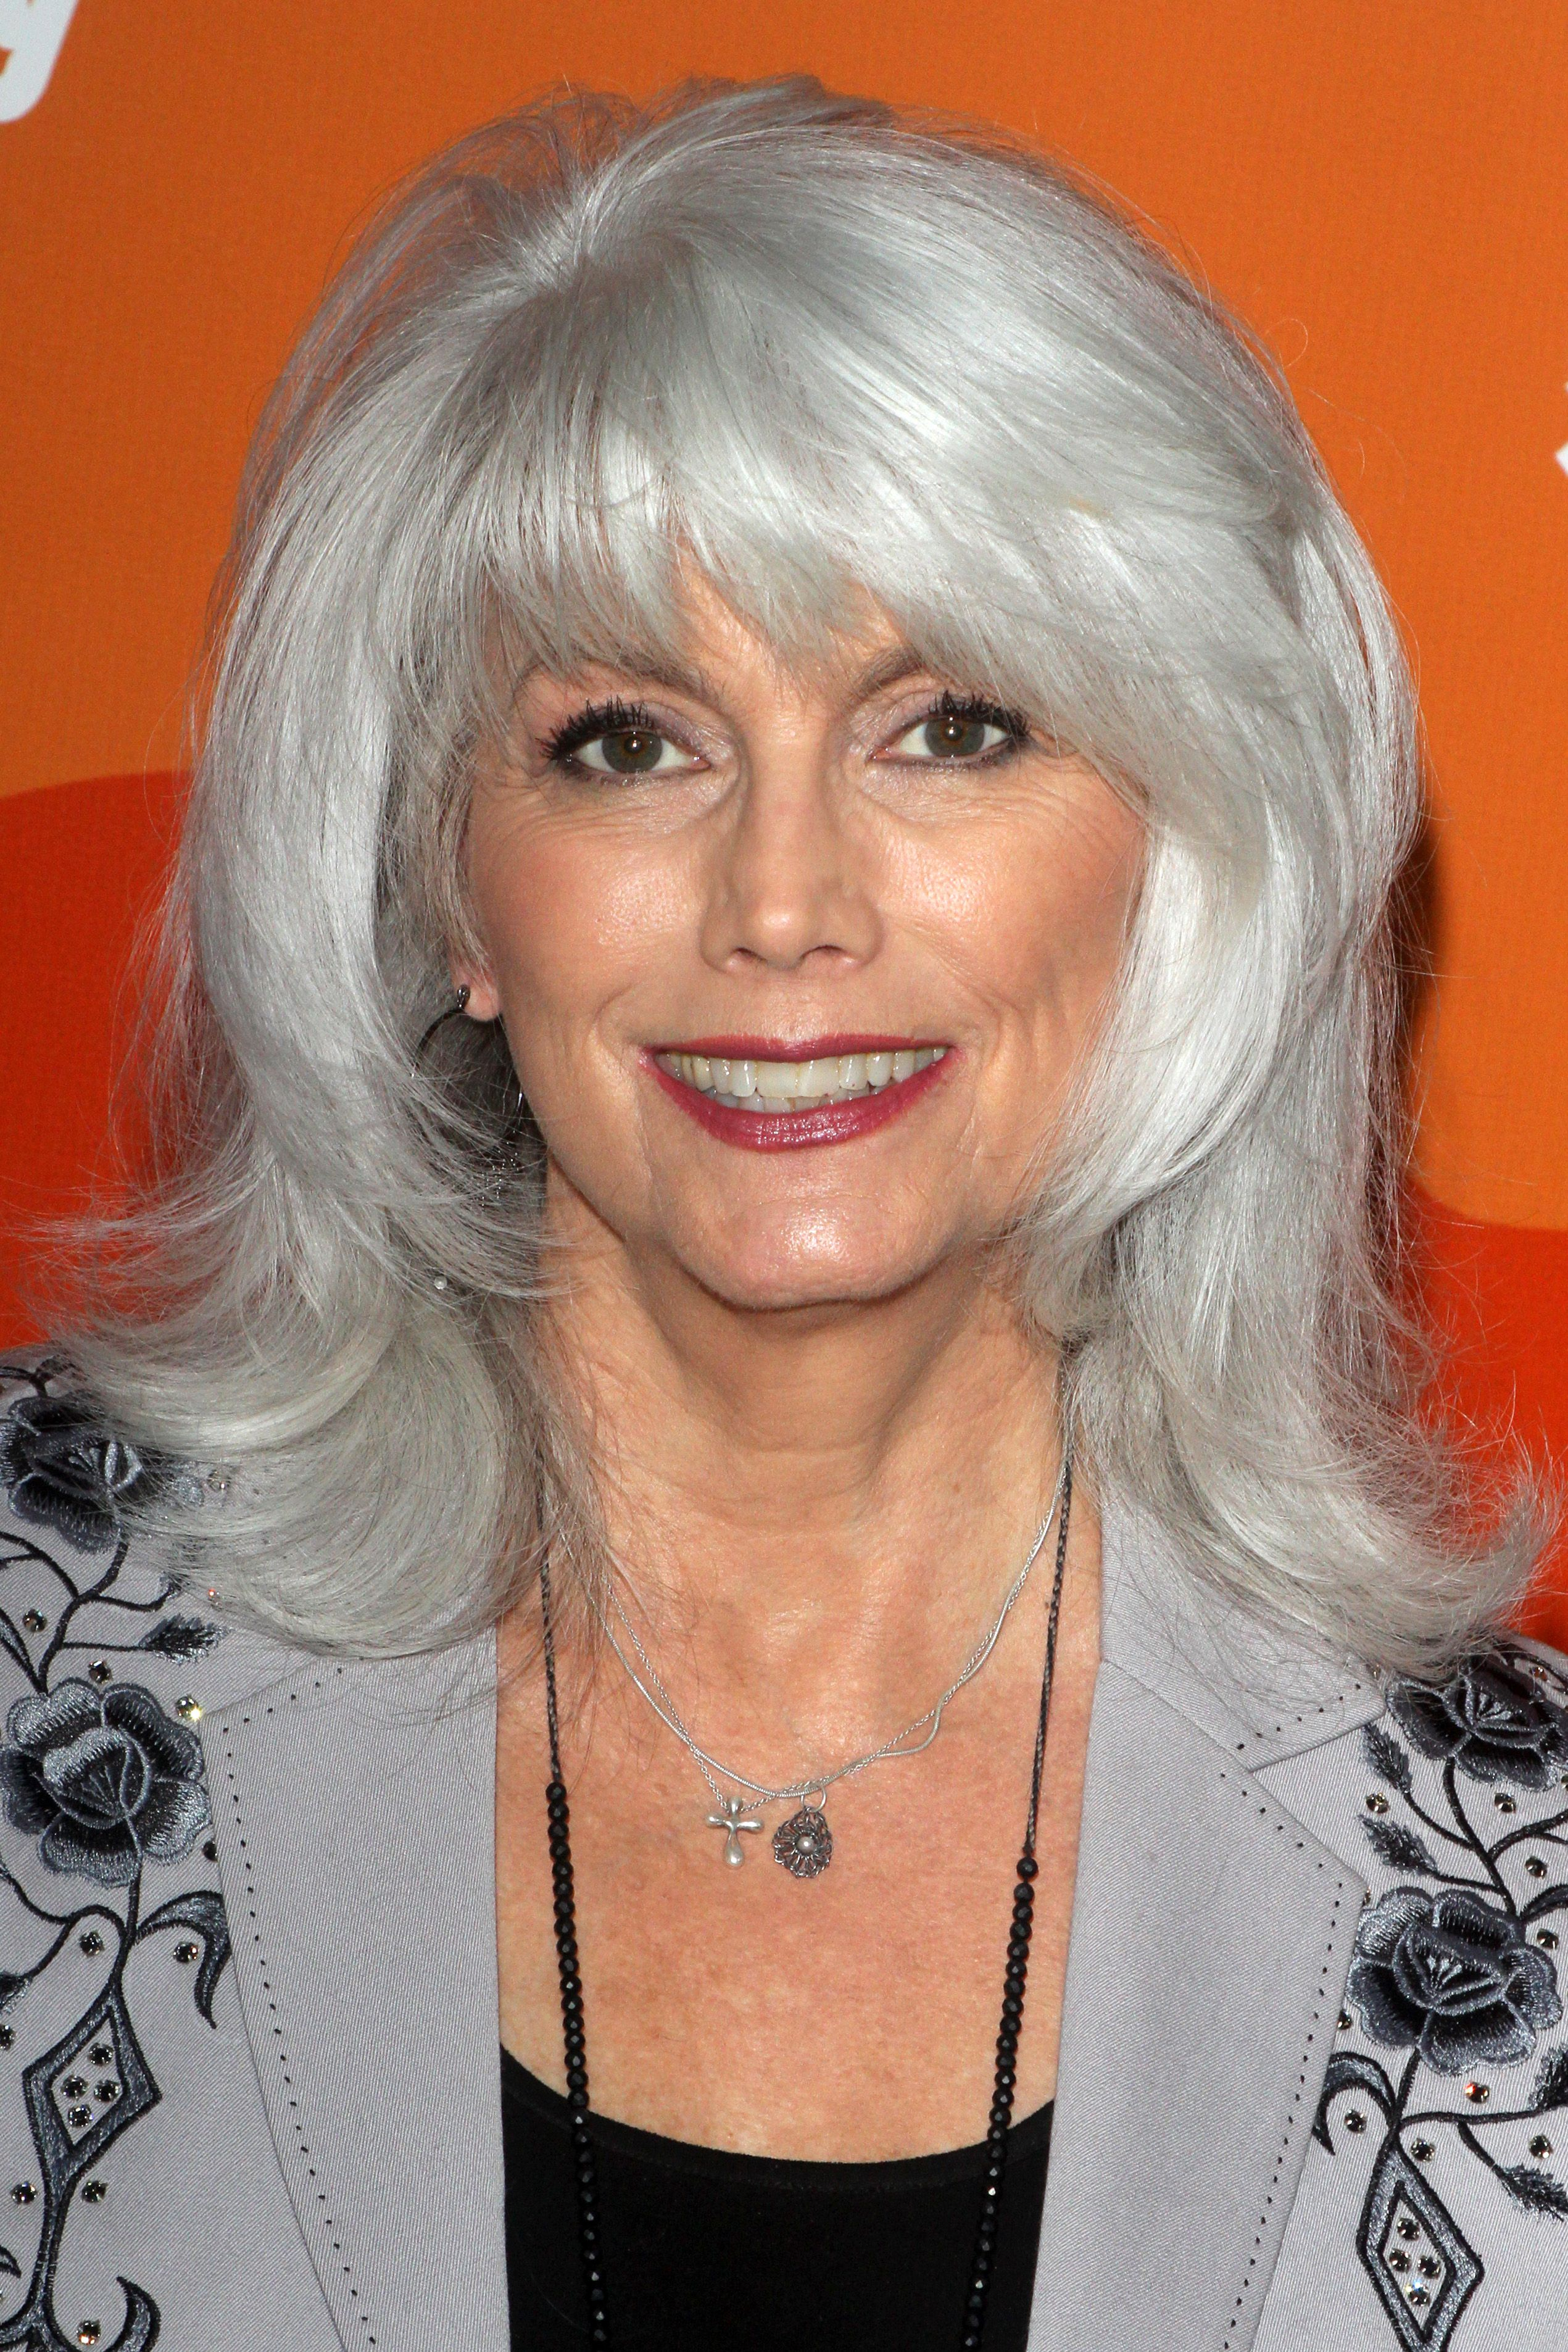 30 Best Gray Hair Color Ideas - Hair Tips for Going Gray